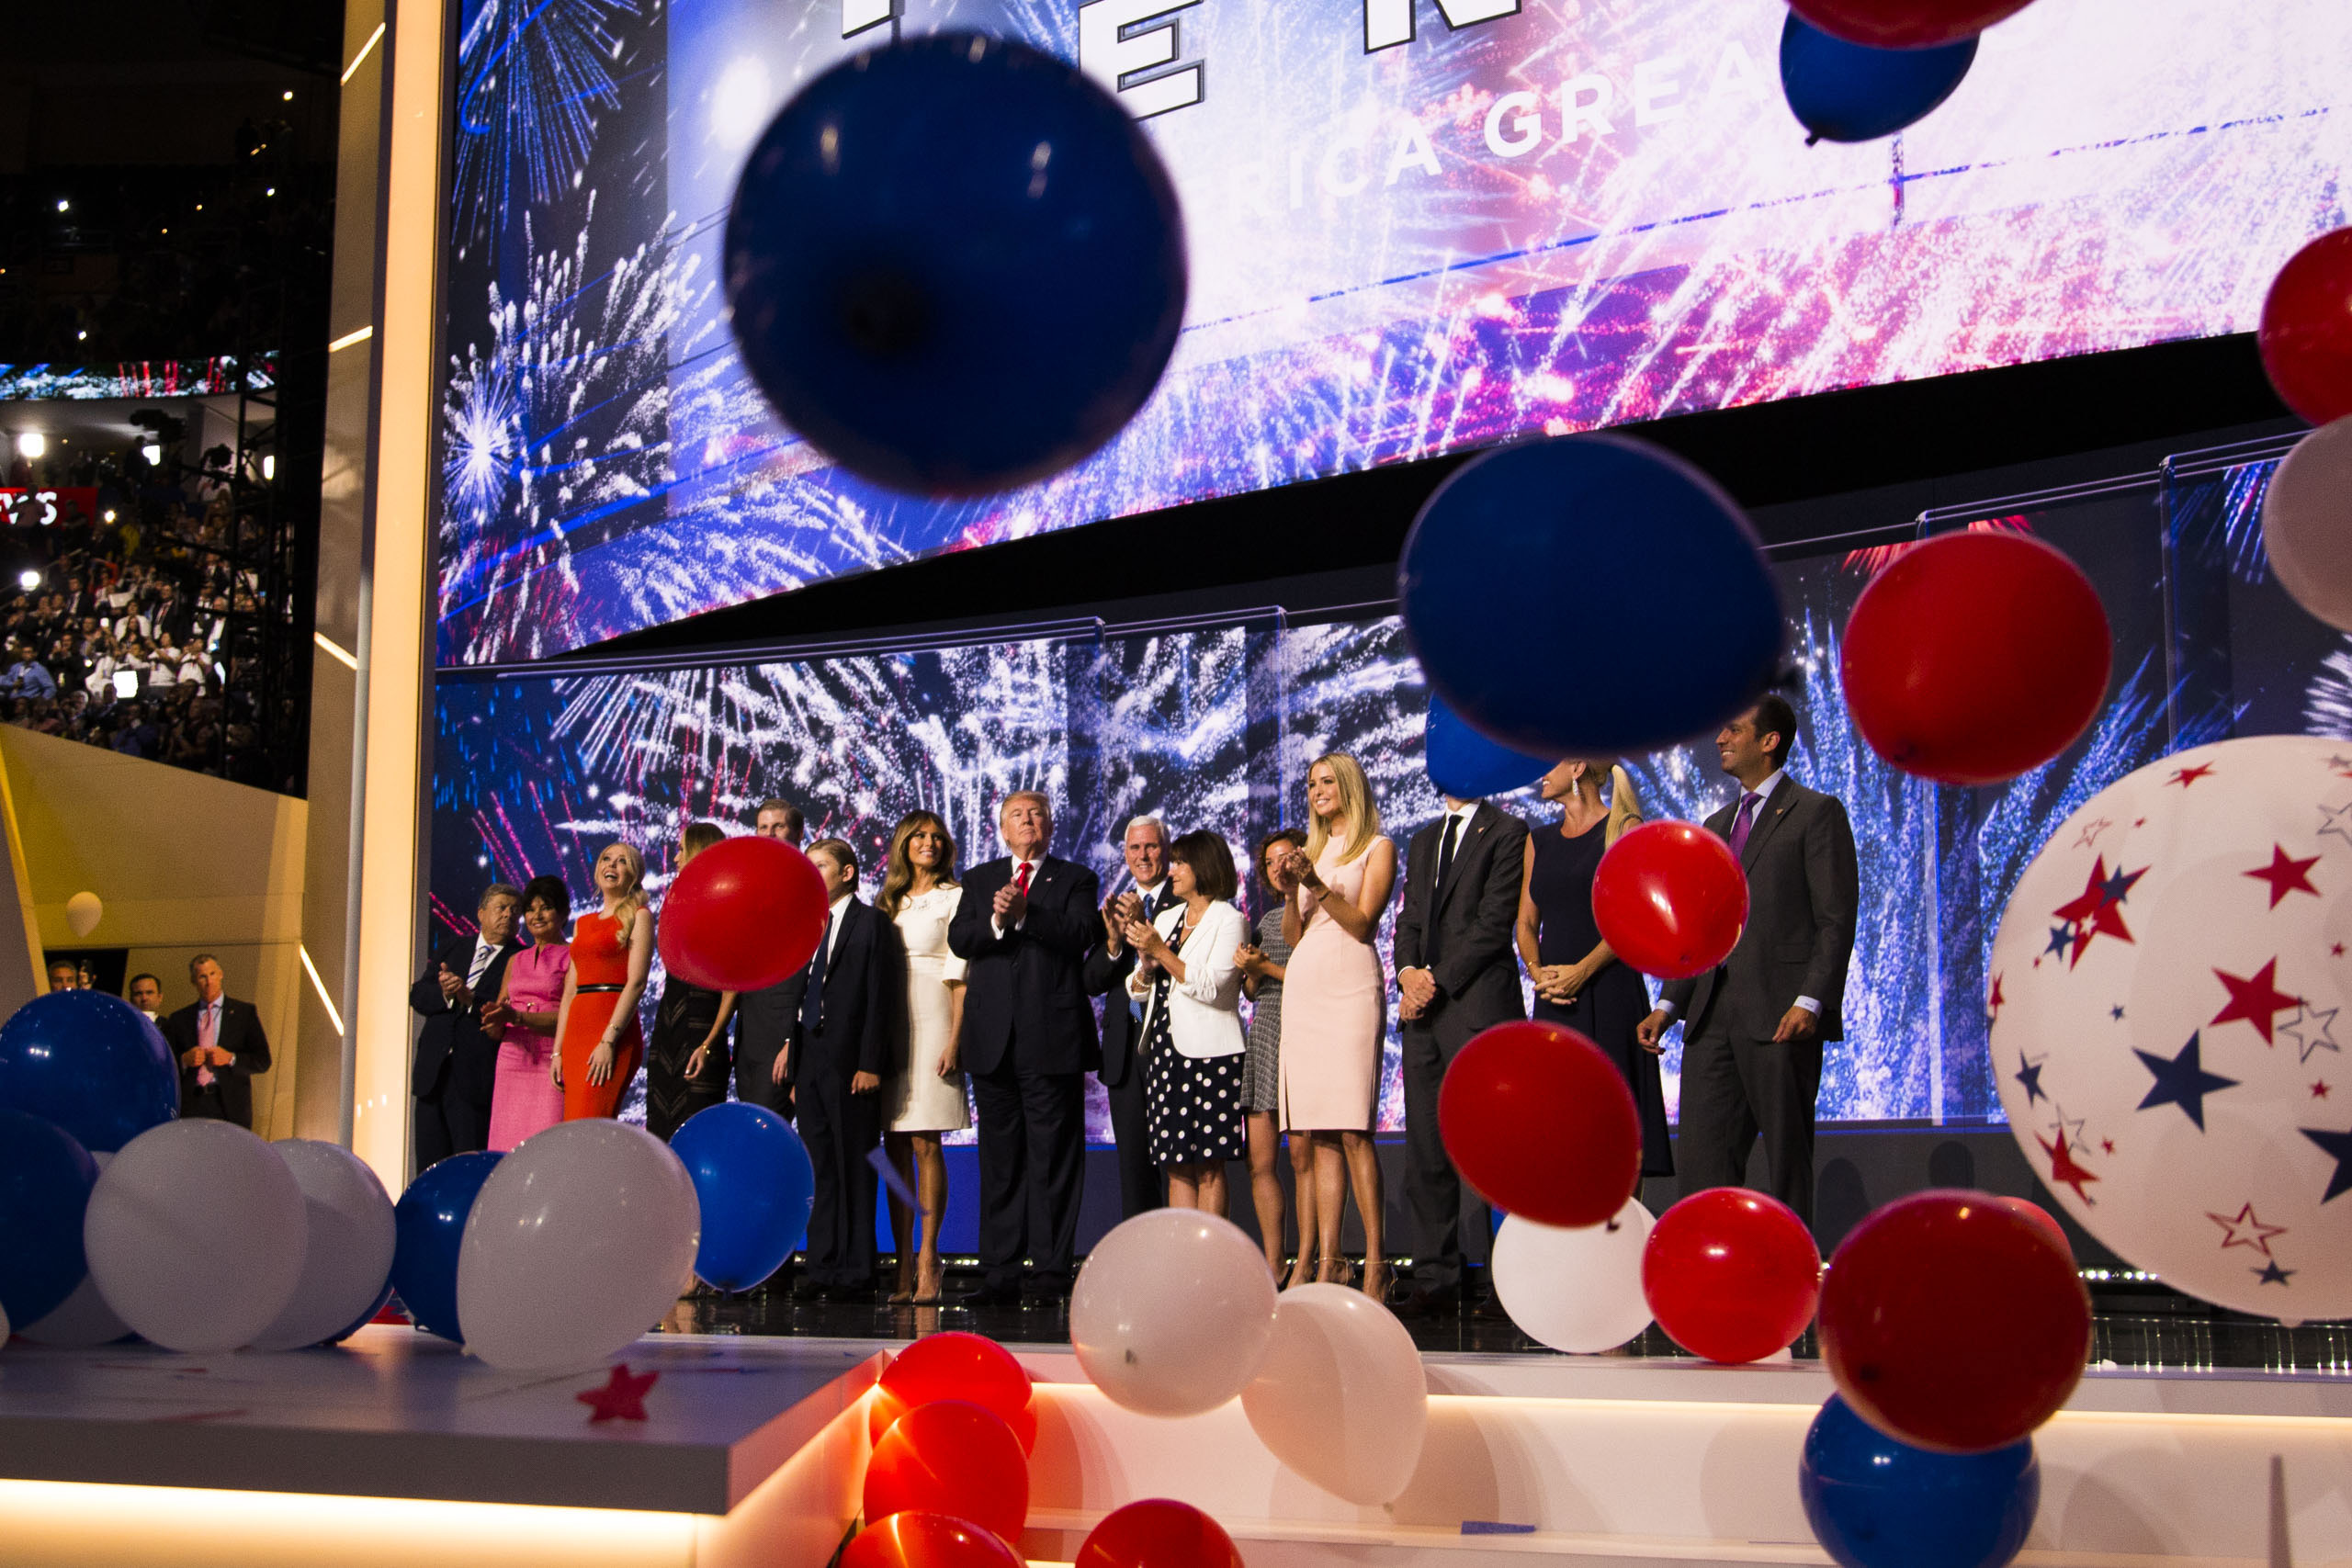 Republican Presidential Candidate Donald Trump and his family celebrate the closing of the 2016 Republican National Convention in Cleveland on Thursday, July 21, 2016.